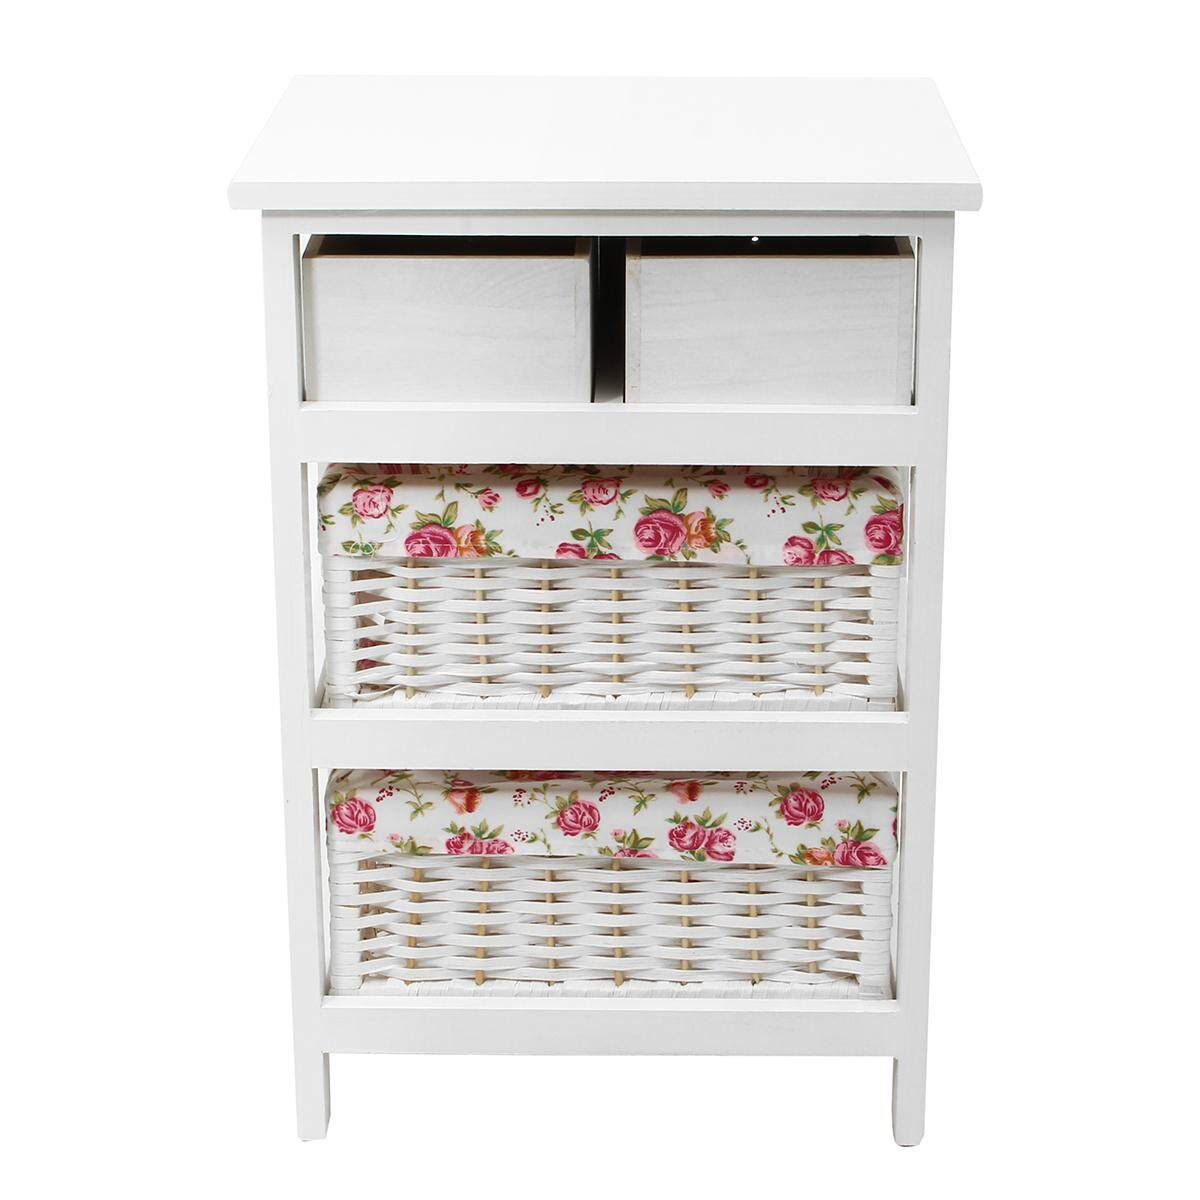 White Wicker Basket Storage Unit Chic Bedside Table Cabinet Chest of Drawers Three floors